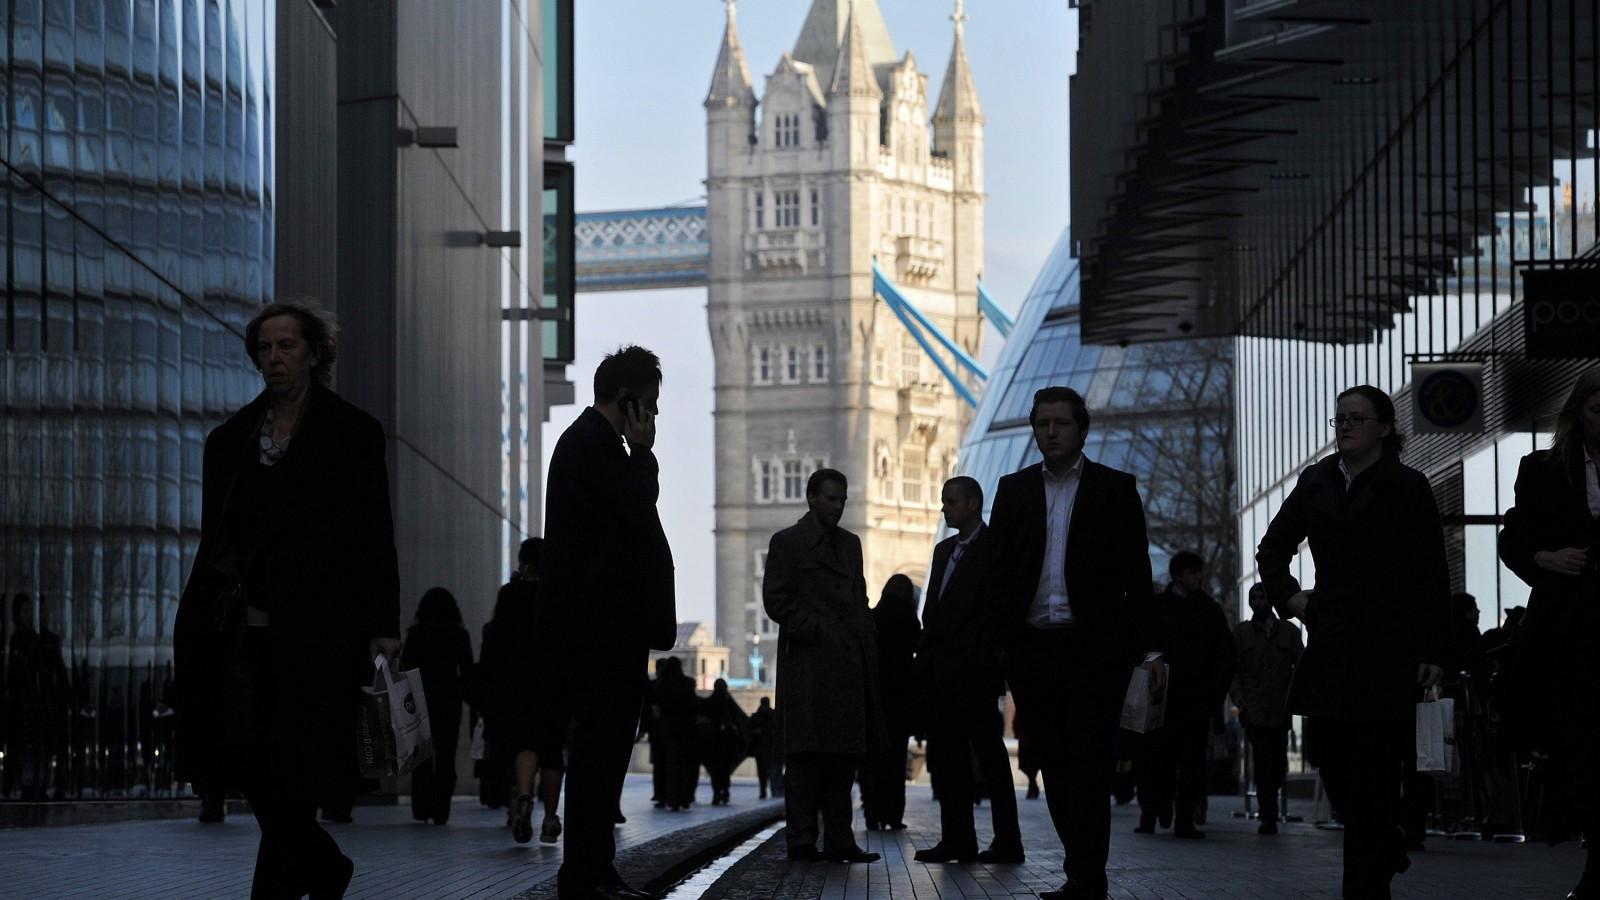 "Office workers are seen in the London Place business district near Tower Bridge in central London February 9, 2011. Britain finalised a tortuous deal with banks on Wednesday to curb bonuses and boost lending to business, but critics said the agreement would be hard to enforce and mere ""political theatre"". REUTERS/Toby Melville (BRITAIN - Tags: BUSINESS CITYSCAPE) - RTXXN3M"